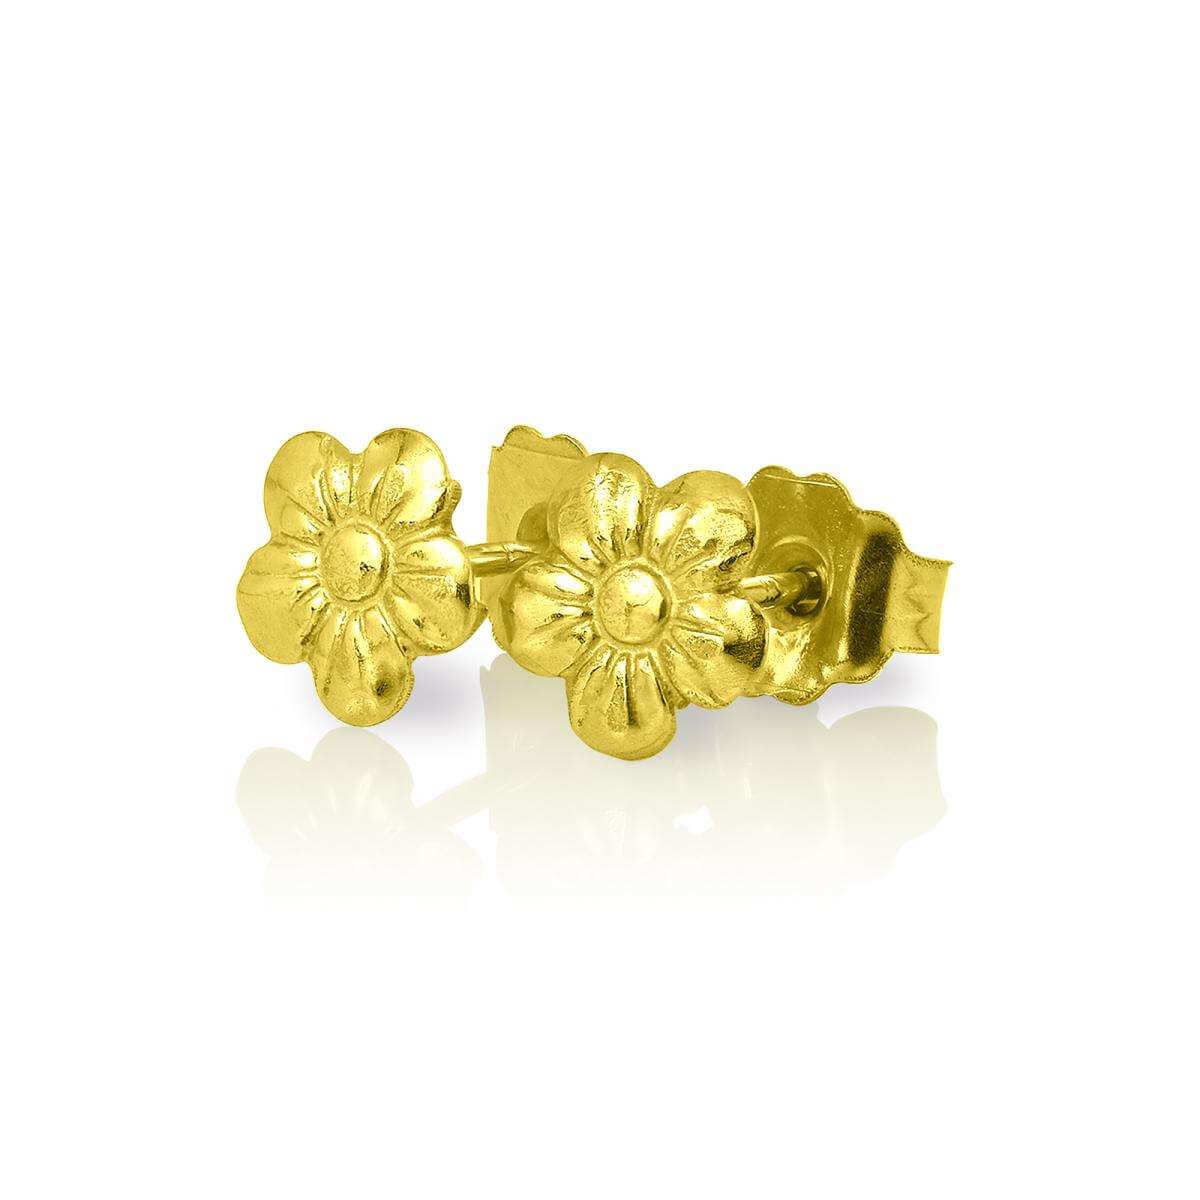 9ct Gold Small Flower Stud Earrings SAAszzD9